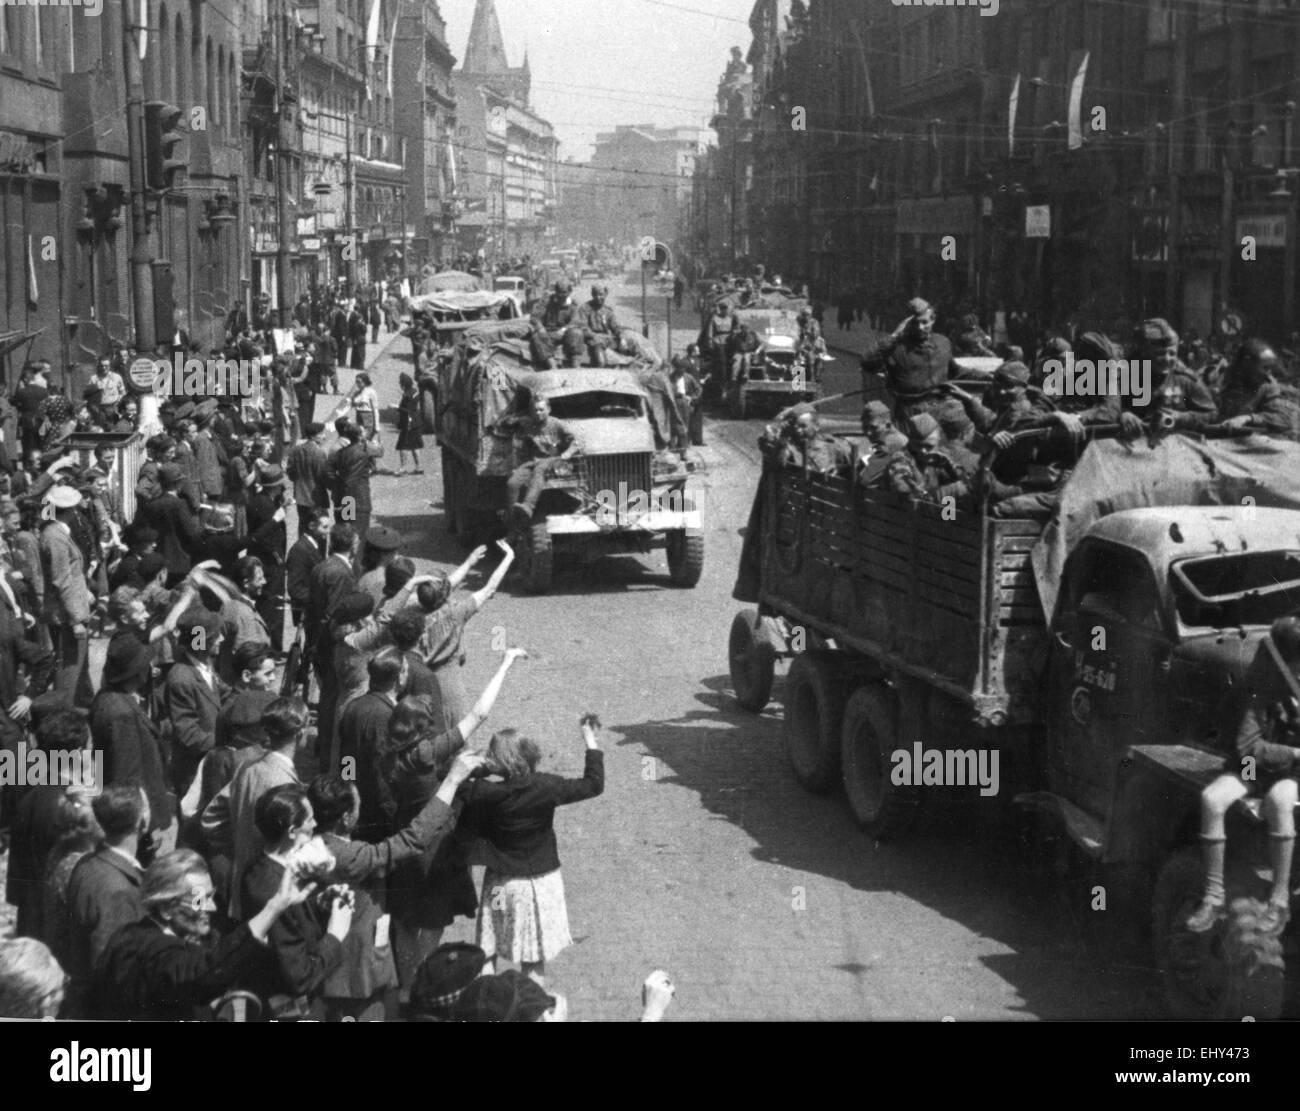 RED ARMY ENTERS Prague 9 May 1945 - Stock Image